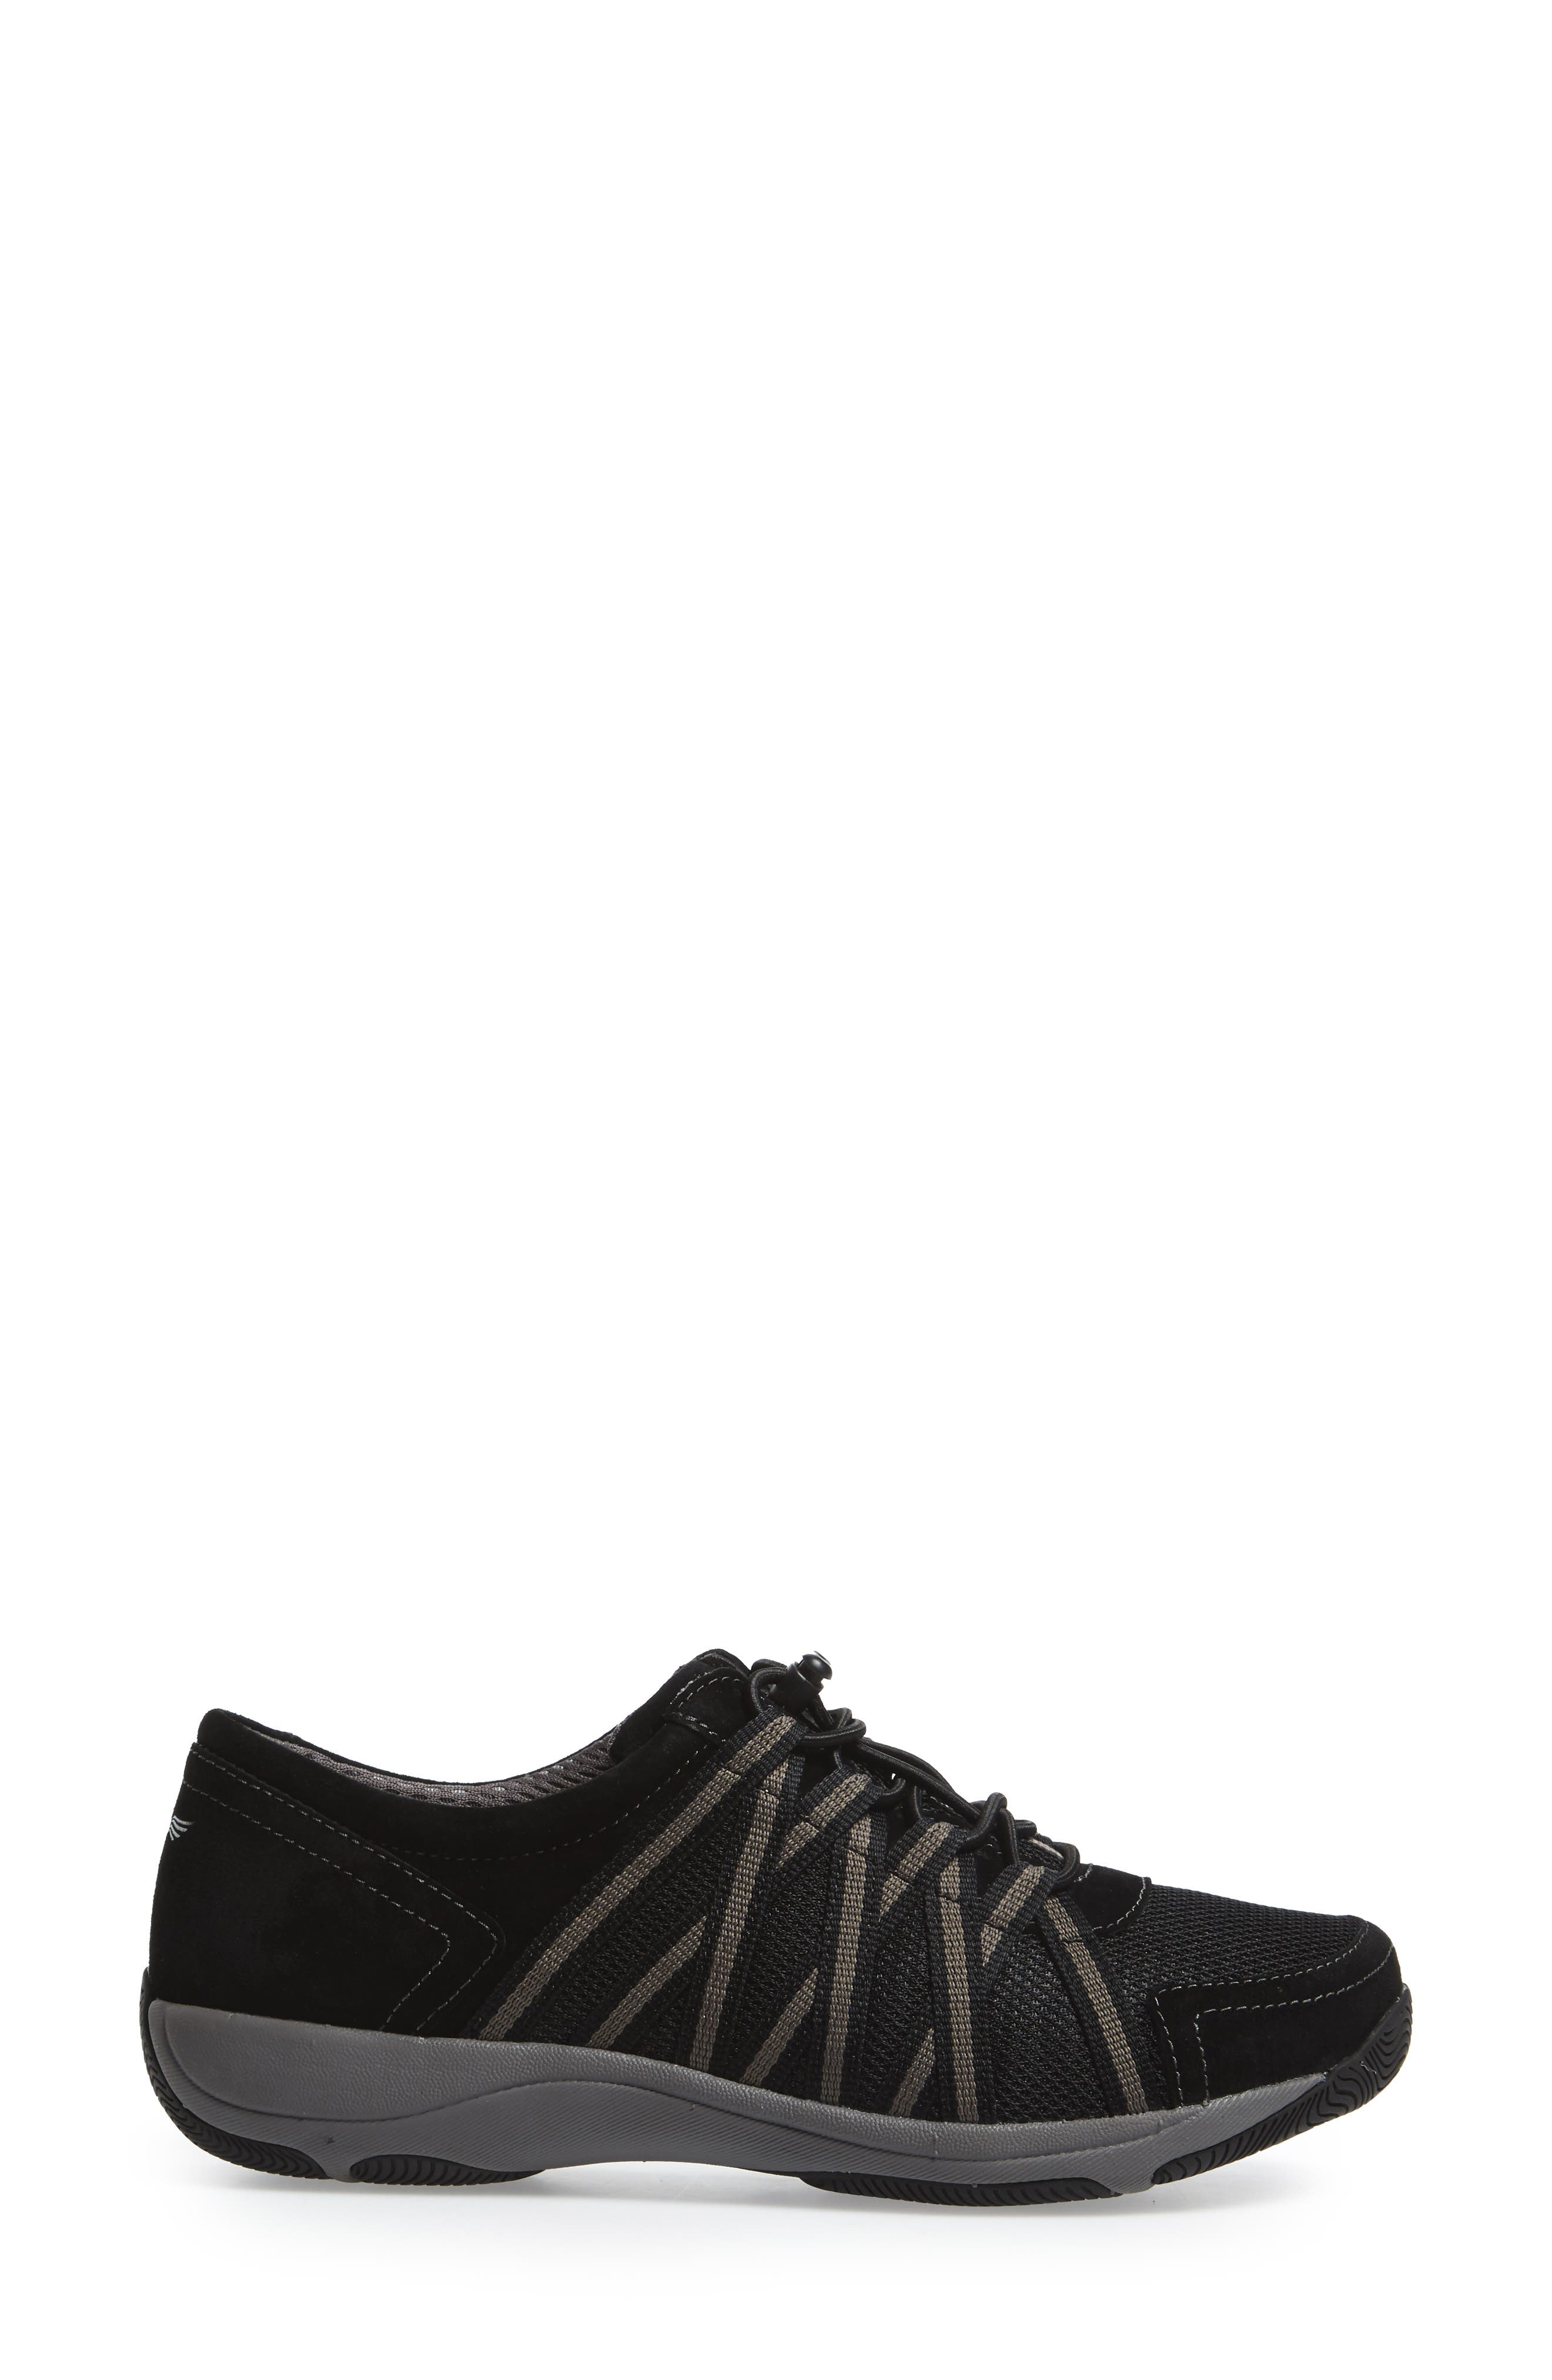 Halifax Collection Honor Sneaker,                             Alternate thumbnail 17, color,